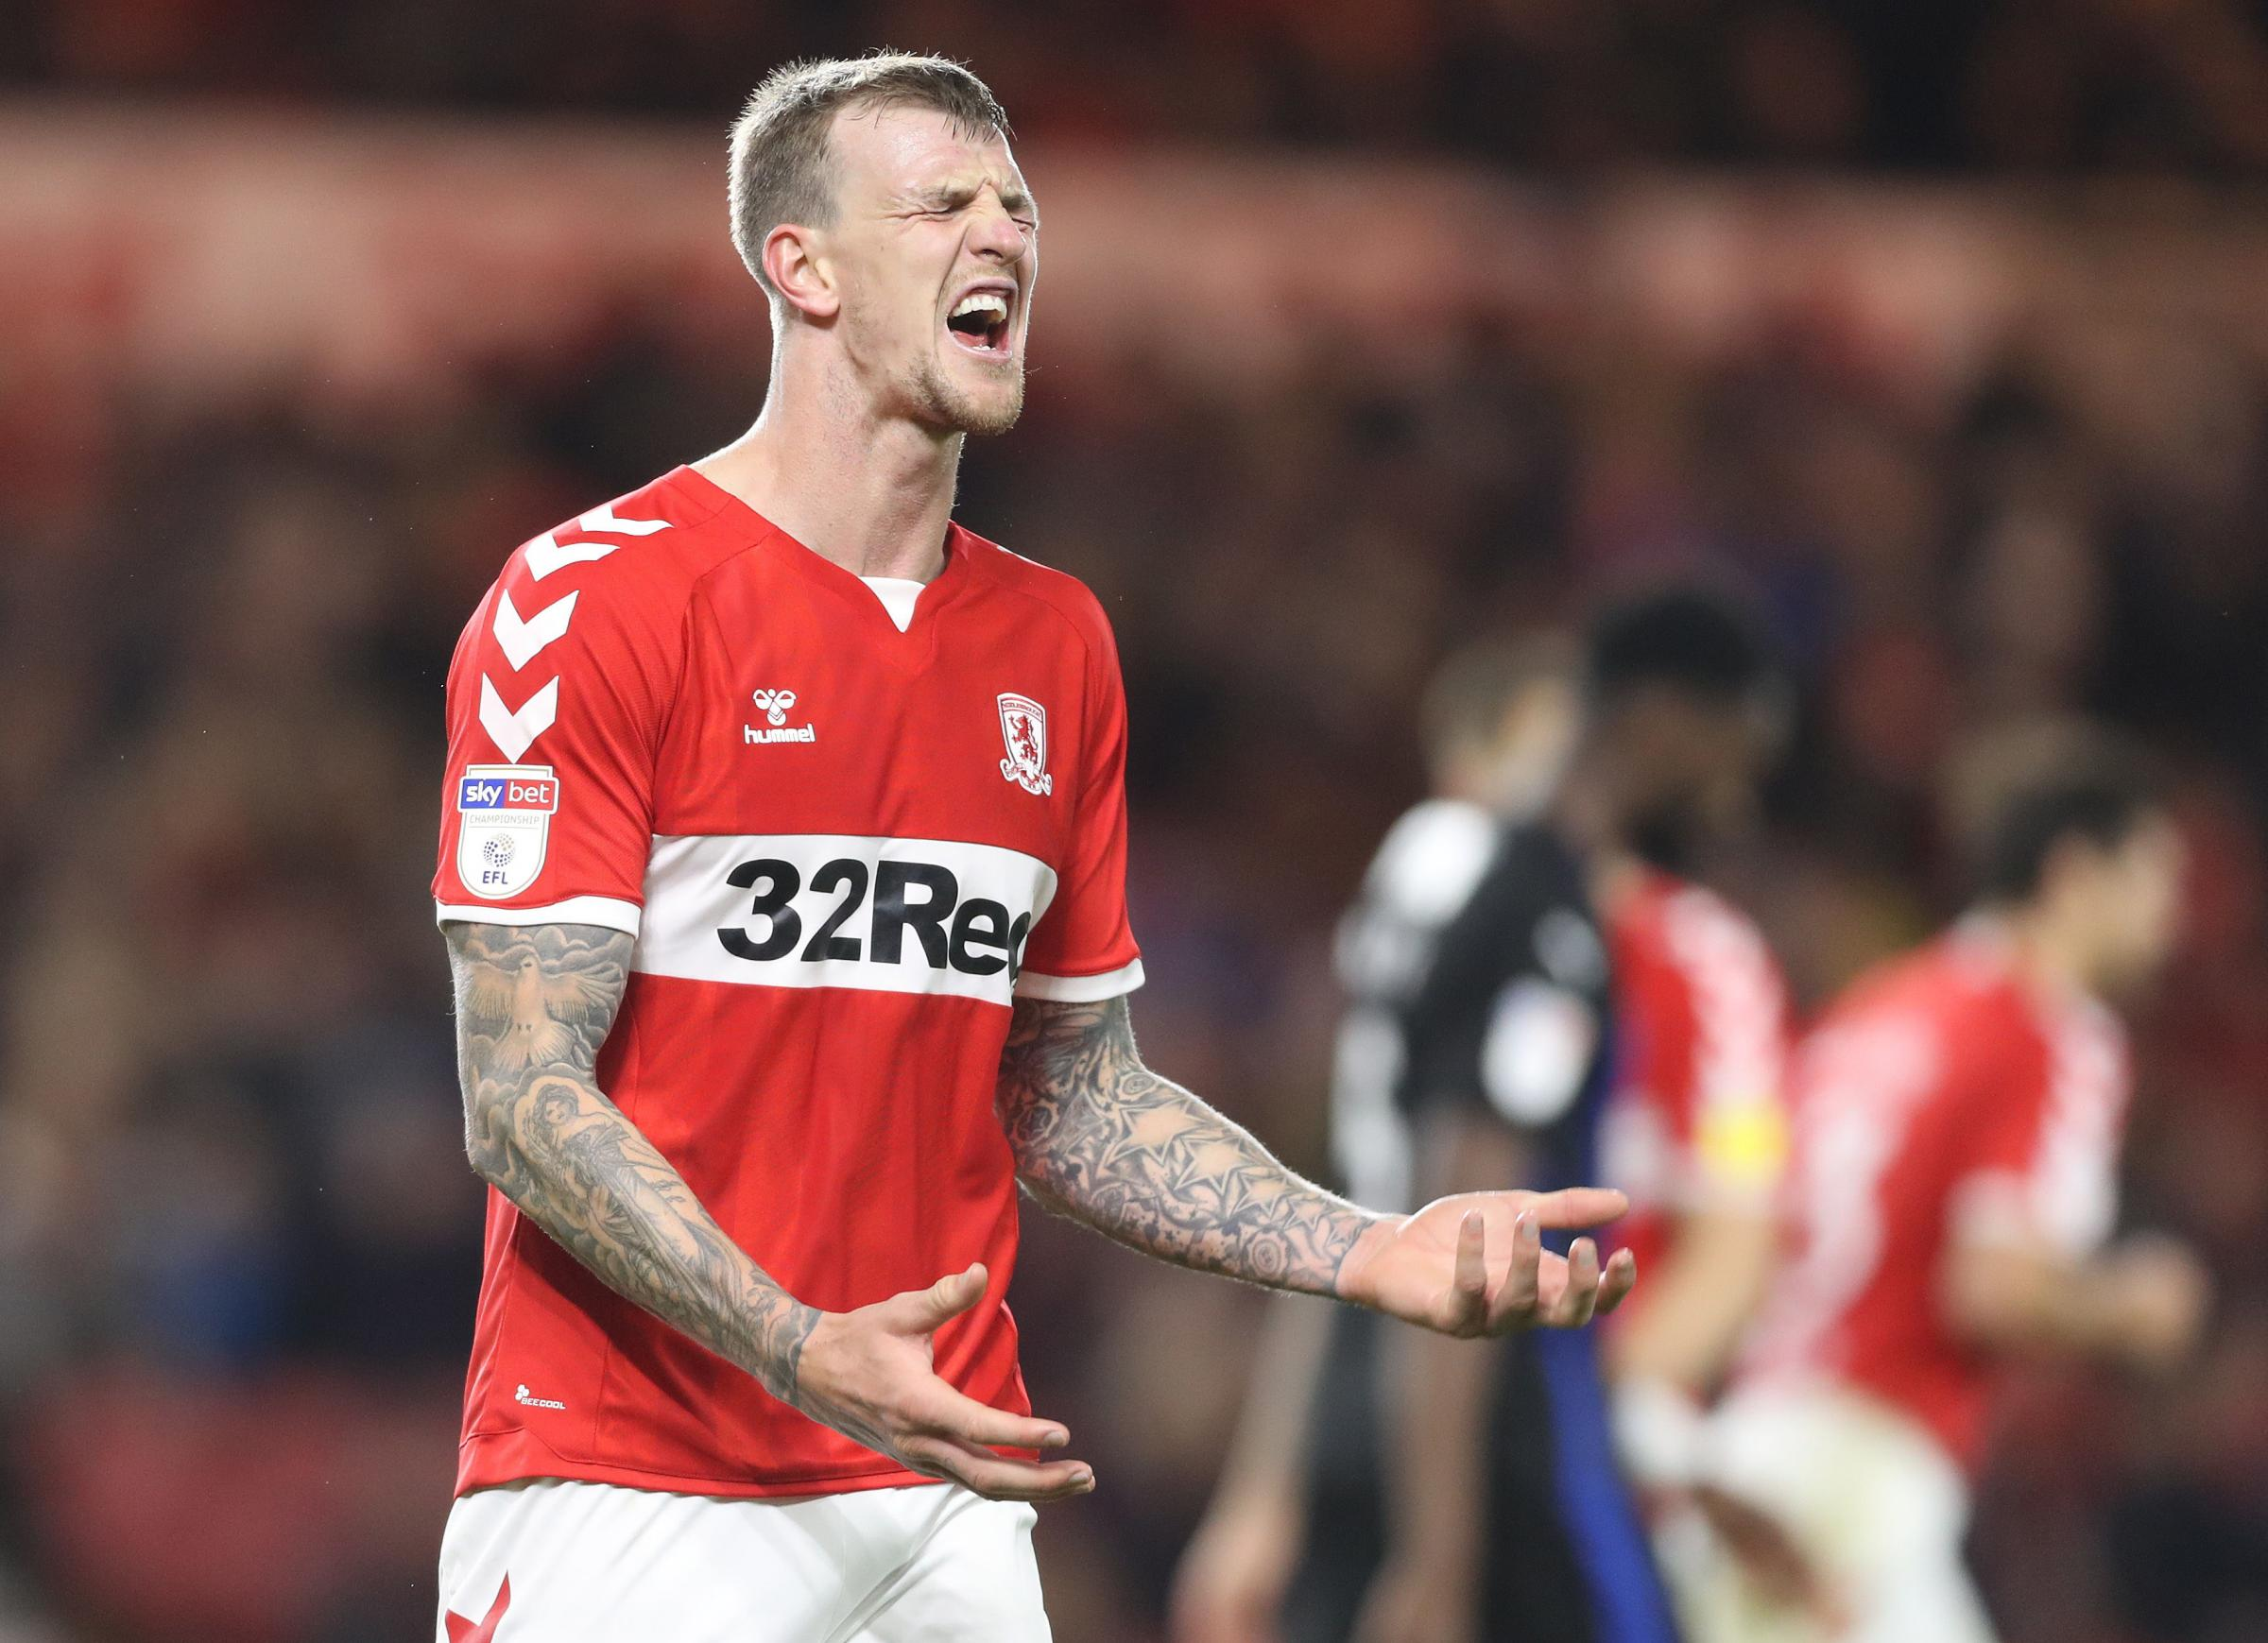 Aden Flint leaving Middlesbrough for Cardiff in £6m deal